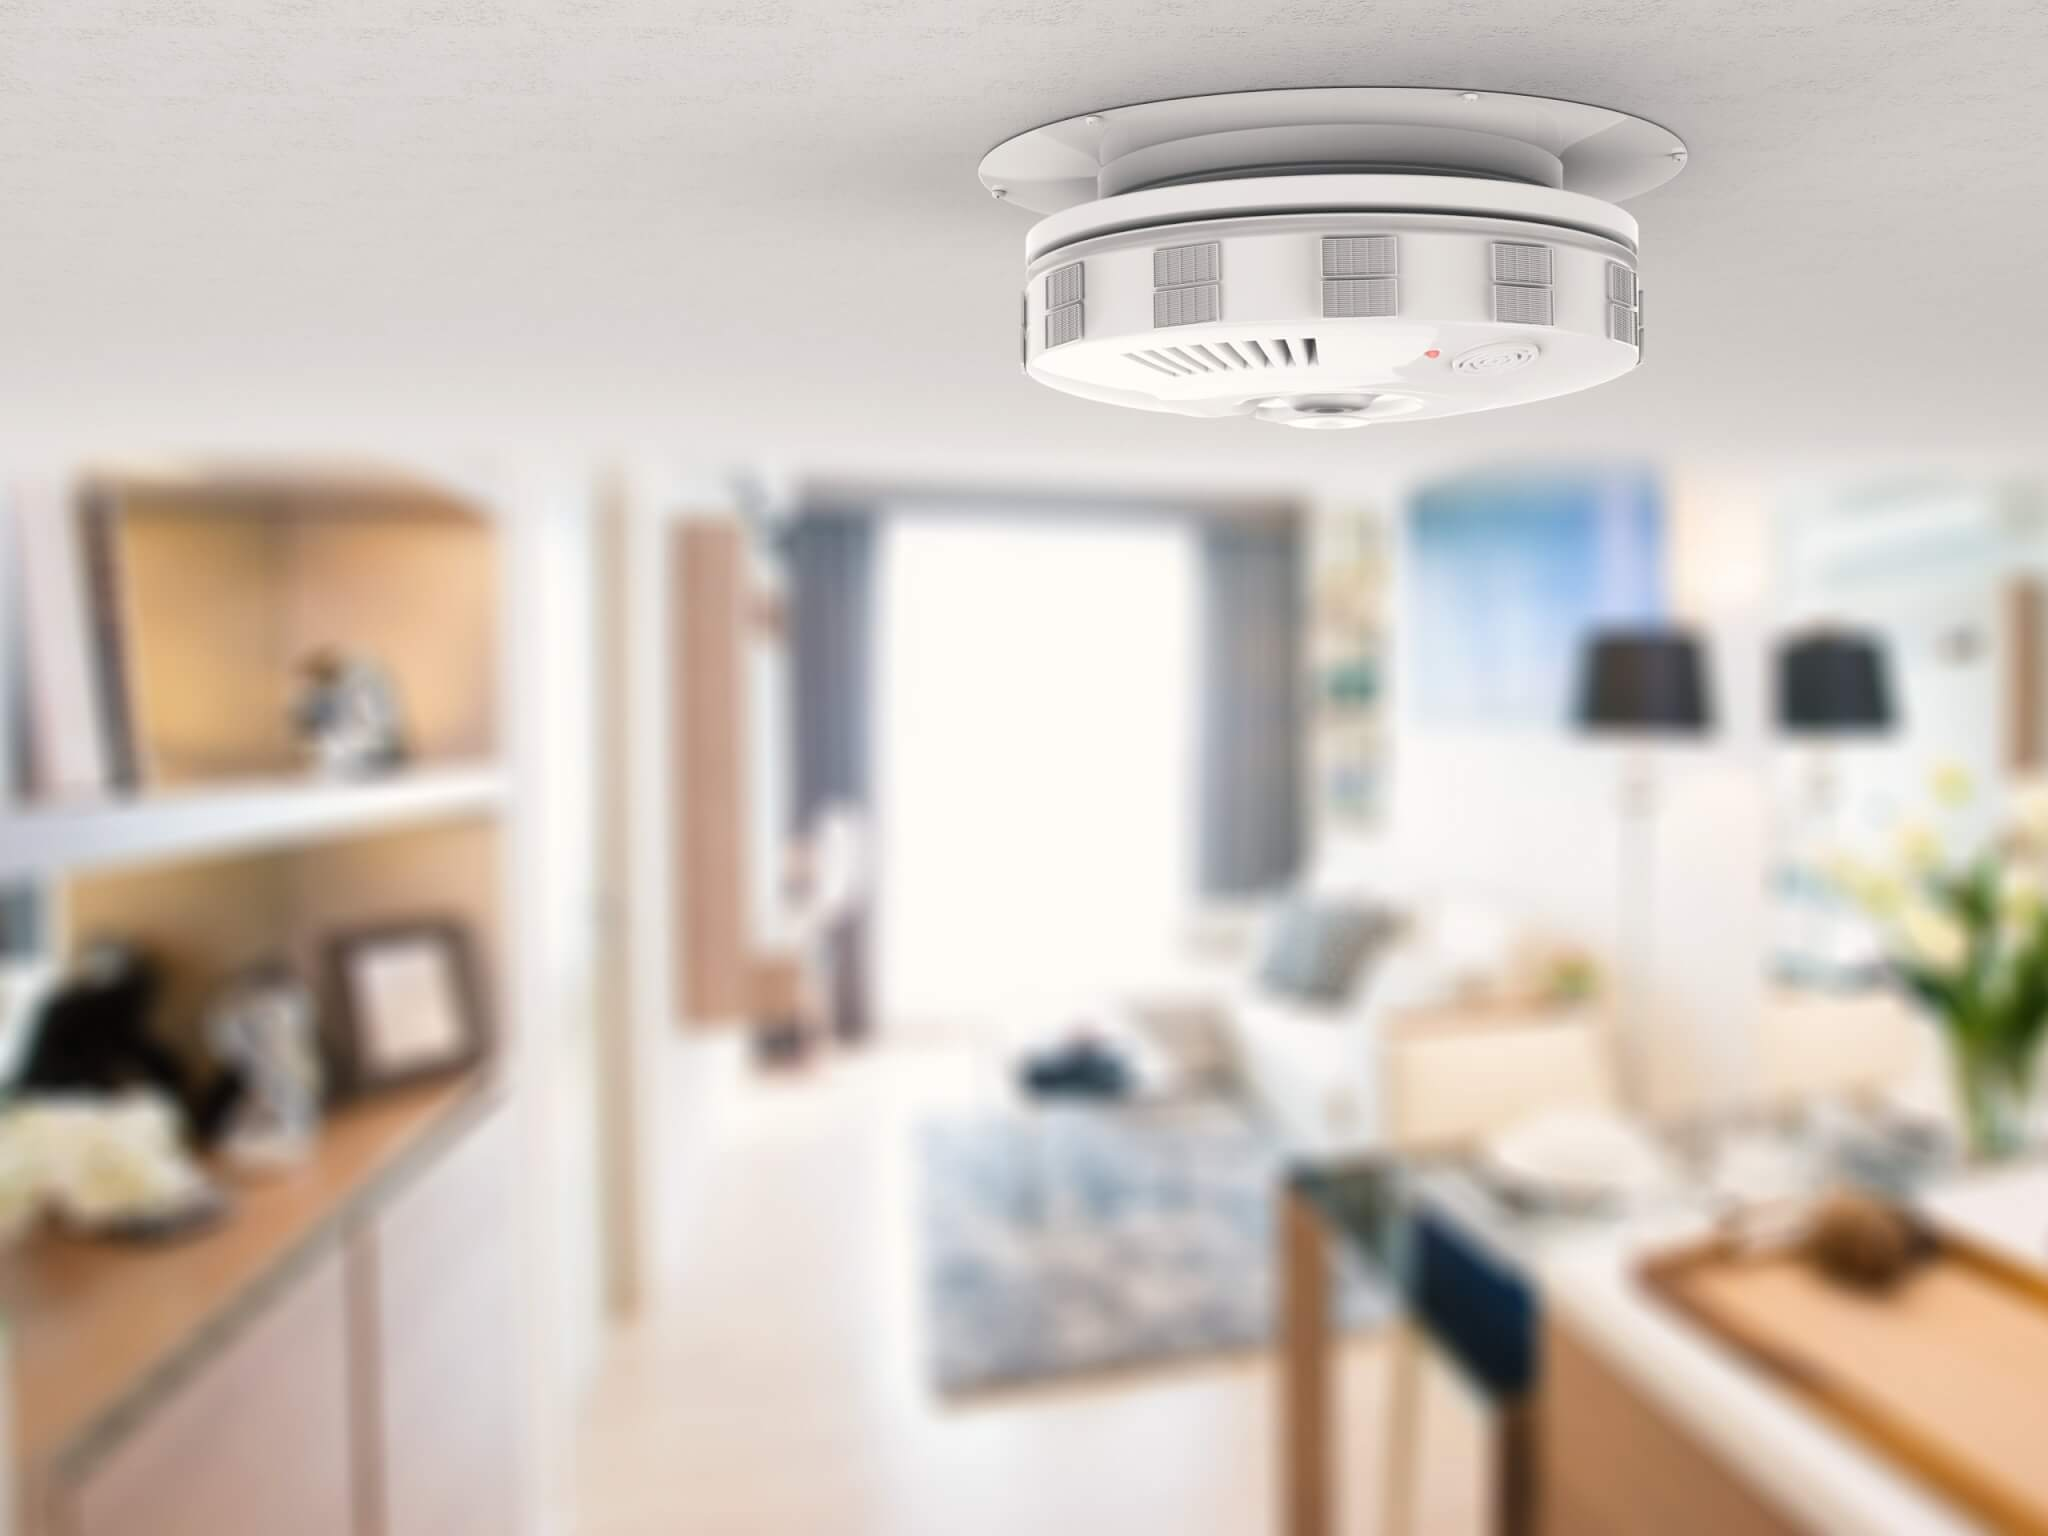 Regularly check smoke detectors in your vacation rental properties